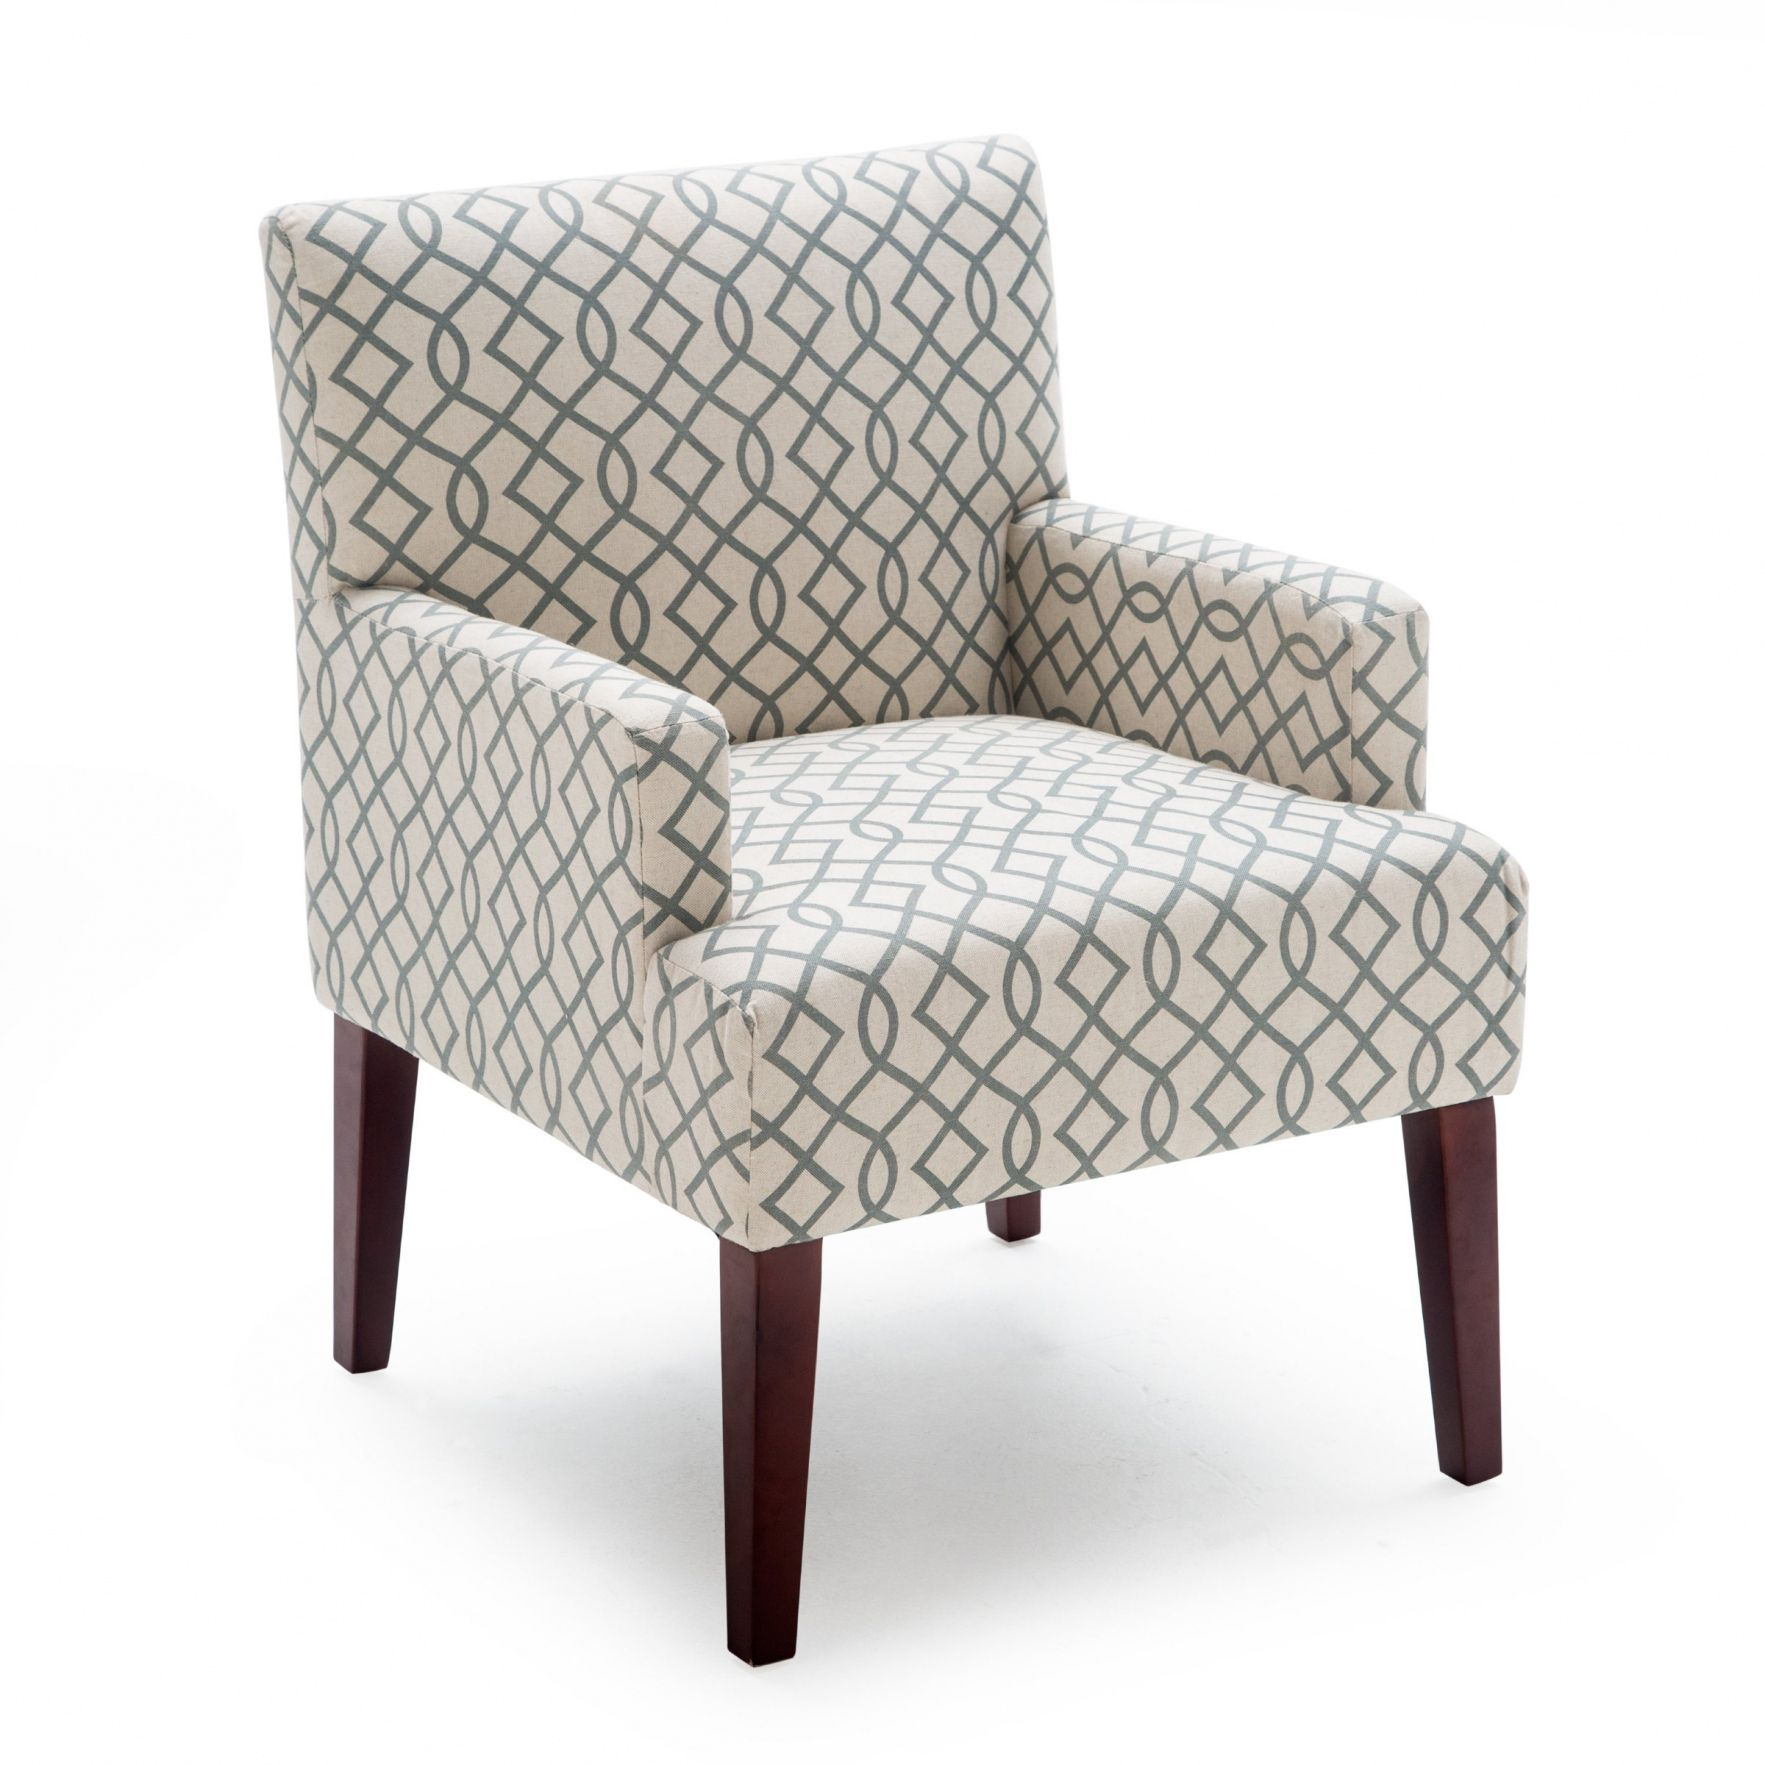 99 living room accent chairs under 200 americas best furniture check more at http